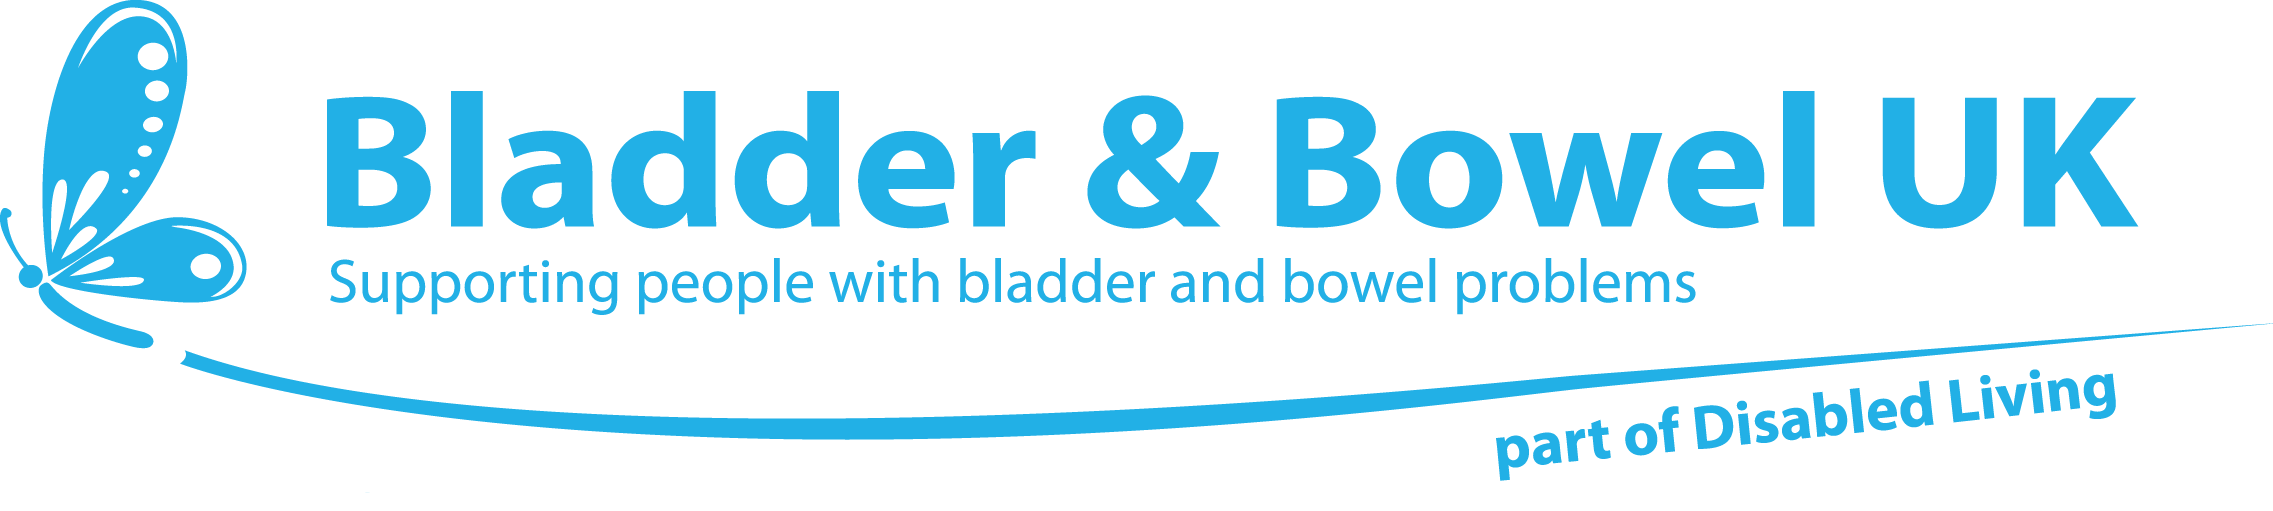 Toilet Training Session - Bladder and Bowel UK Logo - Ups and Downs Southwest